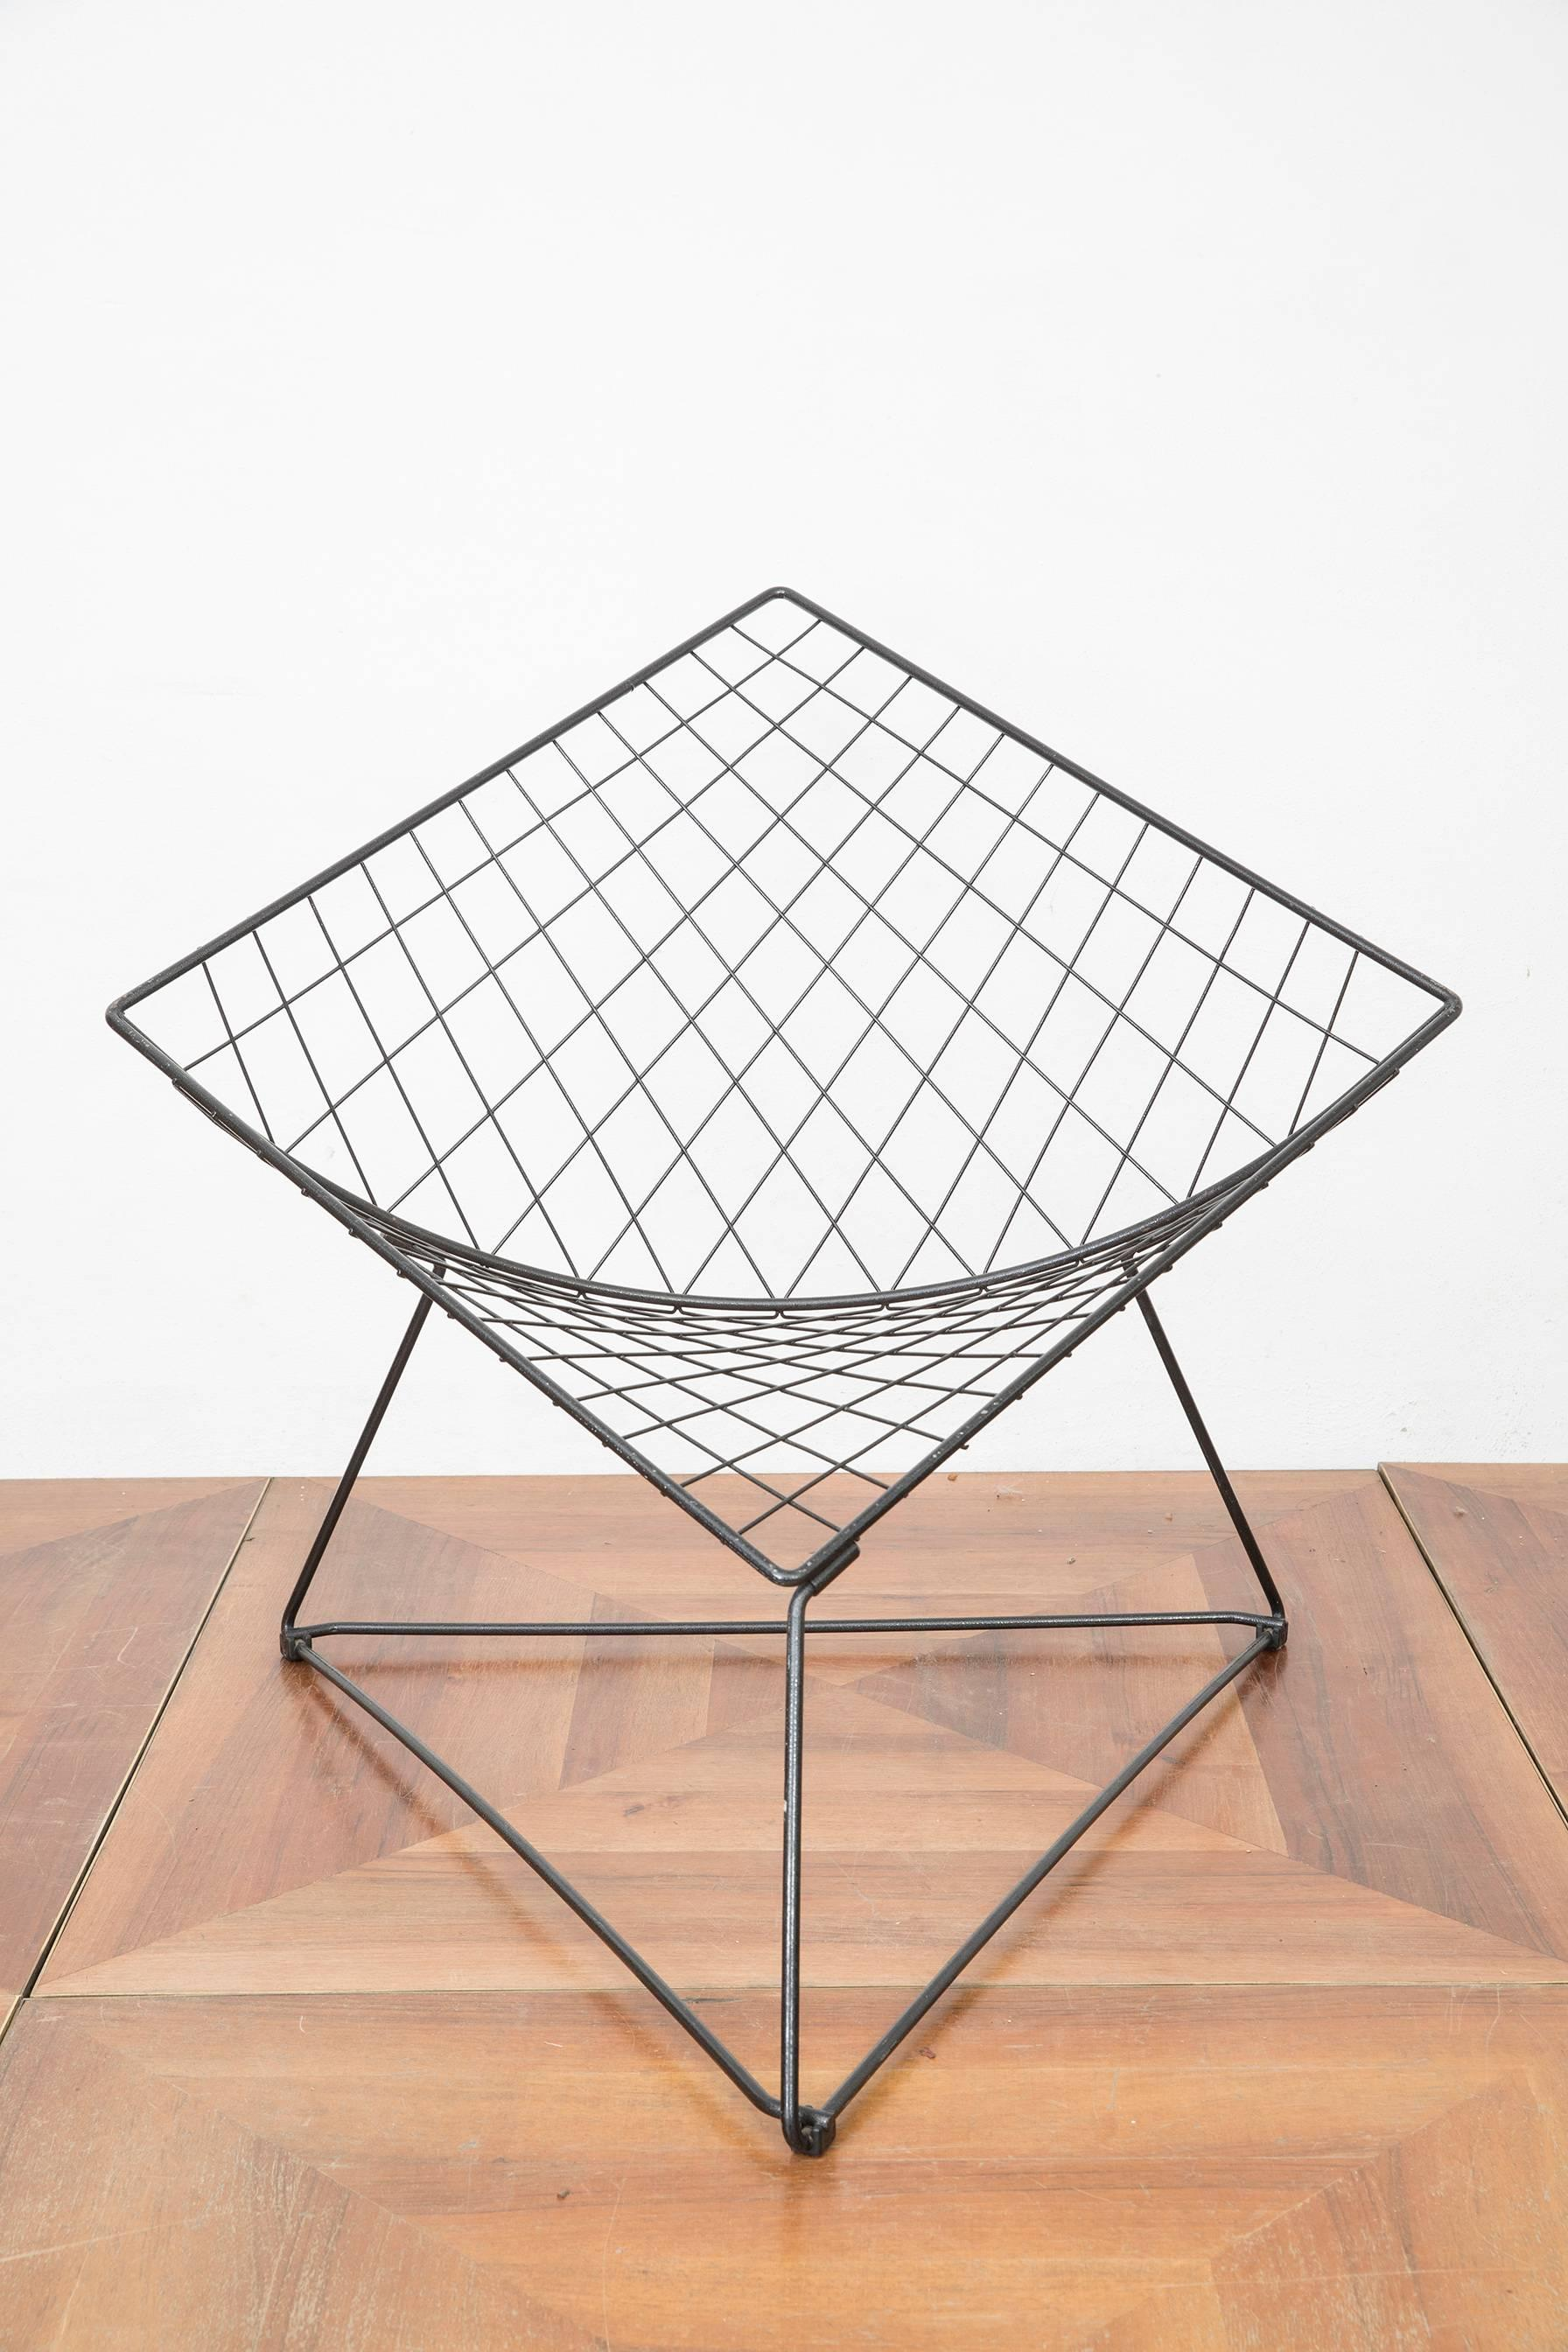 Post Modern Diamond Shaped Metal Wired Chair Designed By Niels Gammelgaard  In The 1980s For